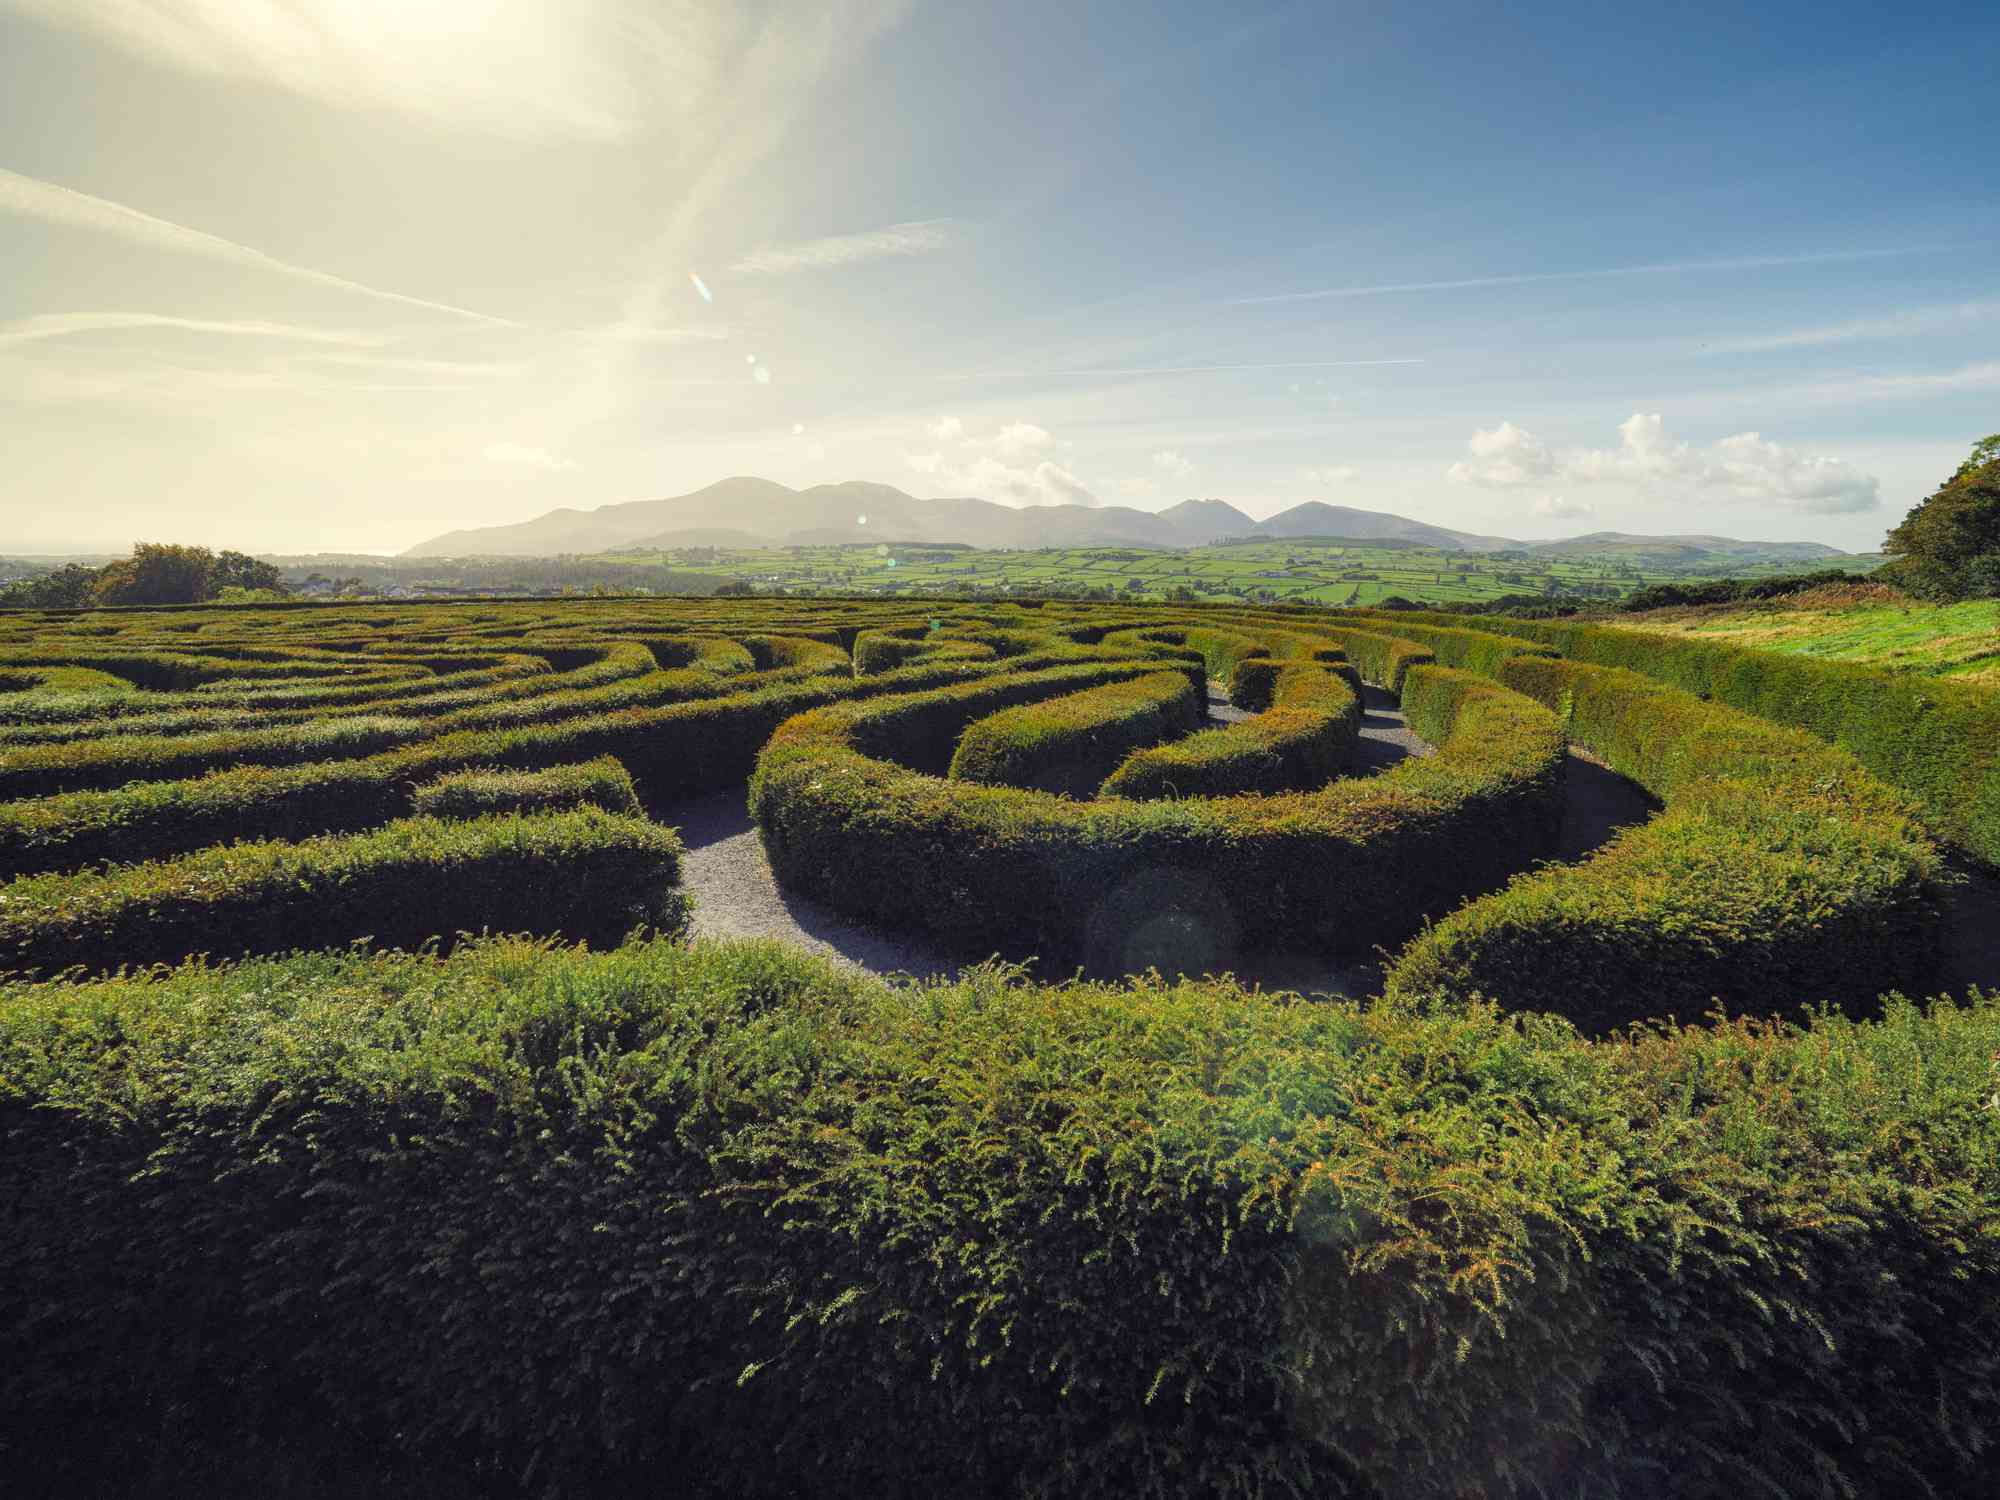 A hedge maze in front of a distant mountain range